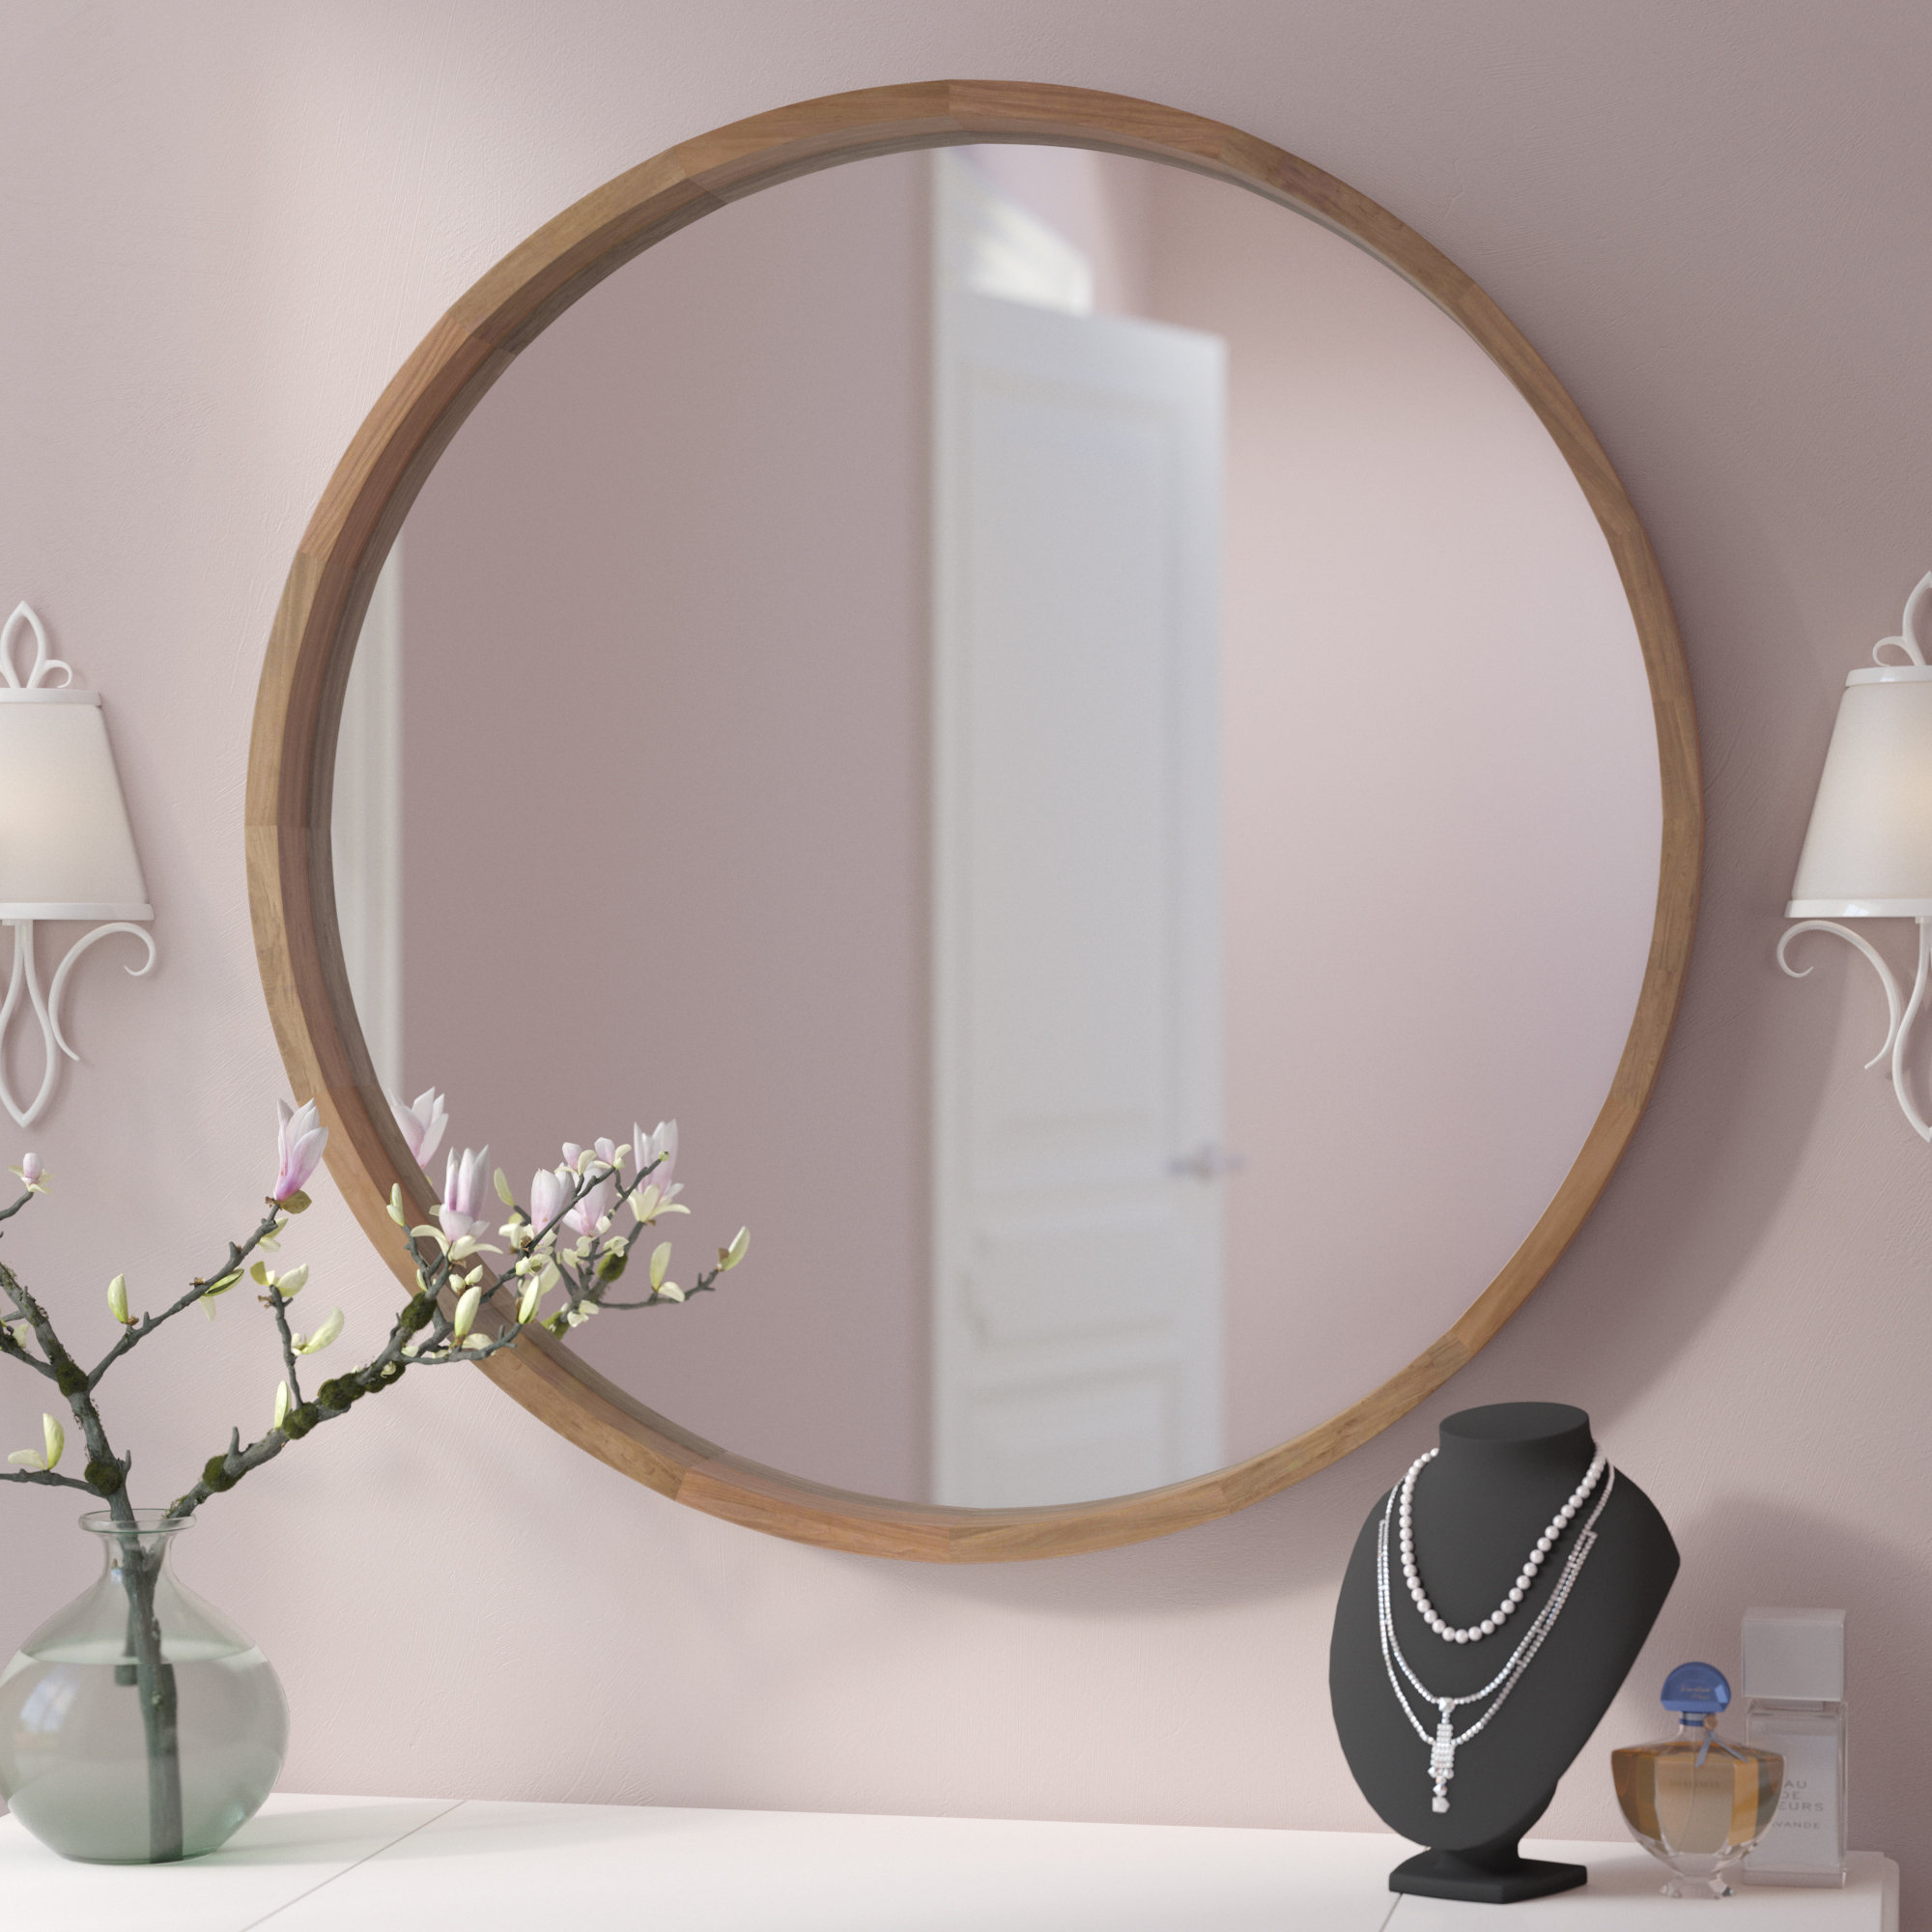 Geometric Mirrors | Wayfair Within Astrid Modern & Contemporary Accent Mirrors (View 4 of 20)